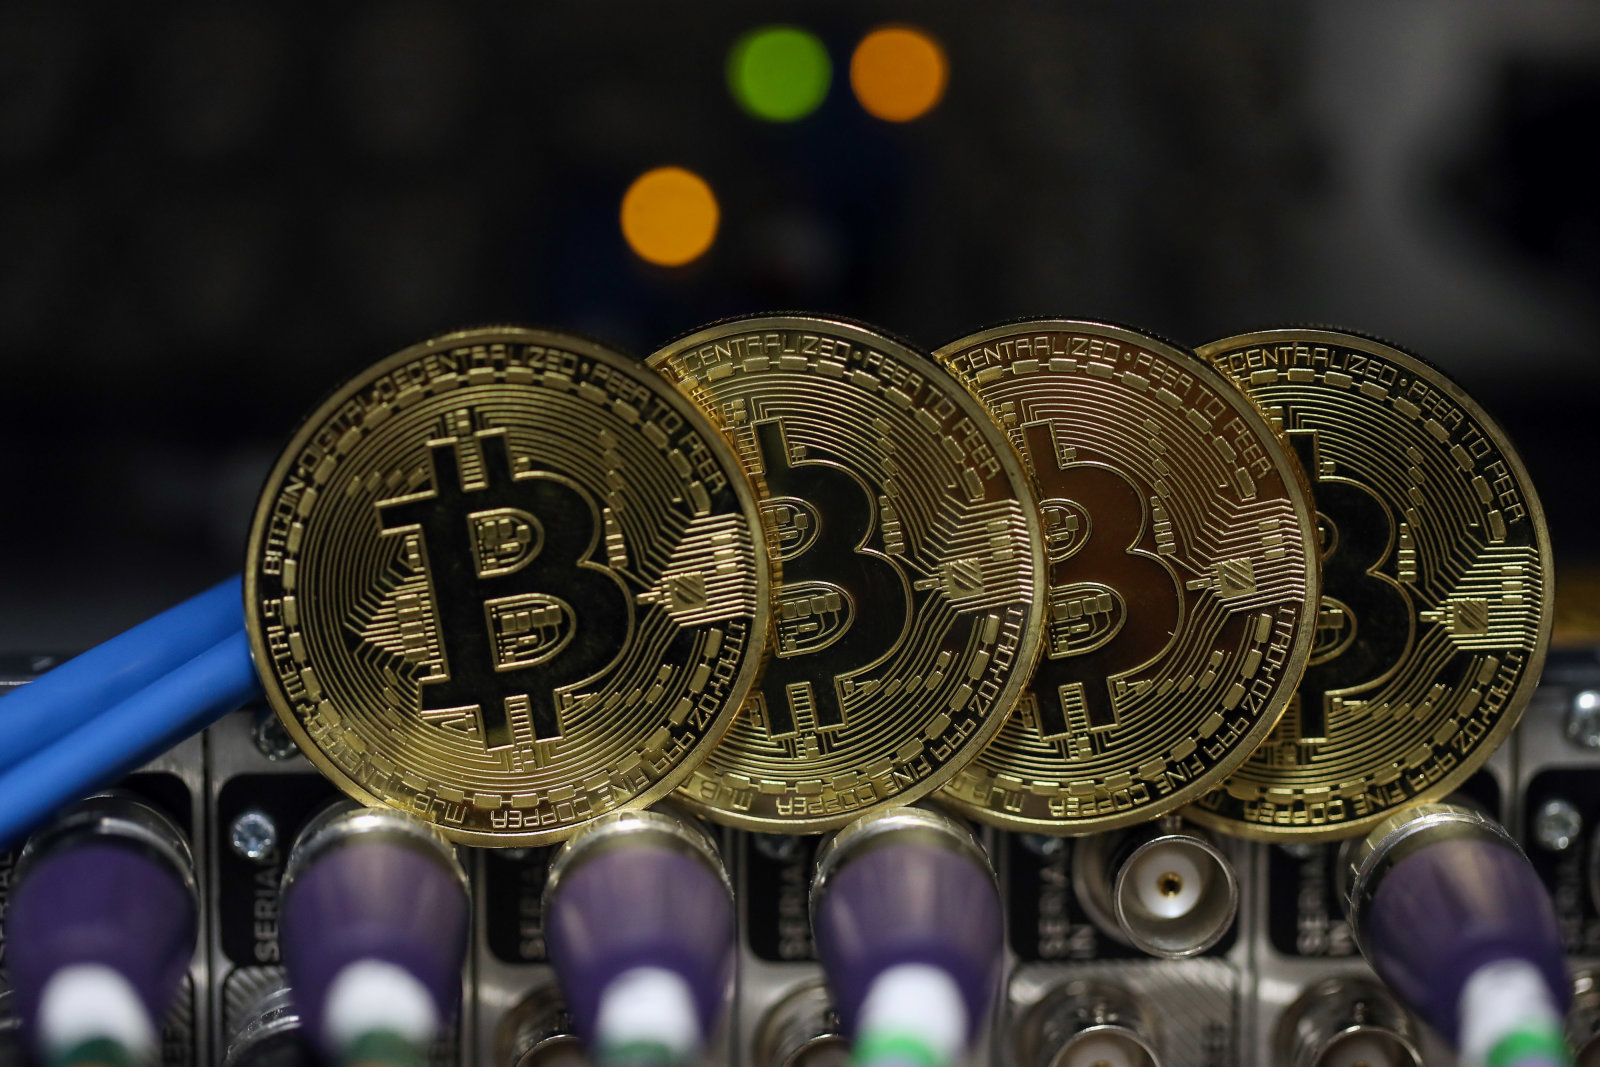 Bitcoins sit on coaxial cables inside a communications room at an office in this arranged photograph in London, U.K., on Tuesday, Sept. 5, 2017. Bitcoin steadied after its biggest drop since June as investors and speculators reappraised the outlook for initial coin offerings. Photographer: Chris Ratcliffe/Bloomberg via Getty Images